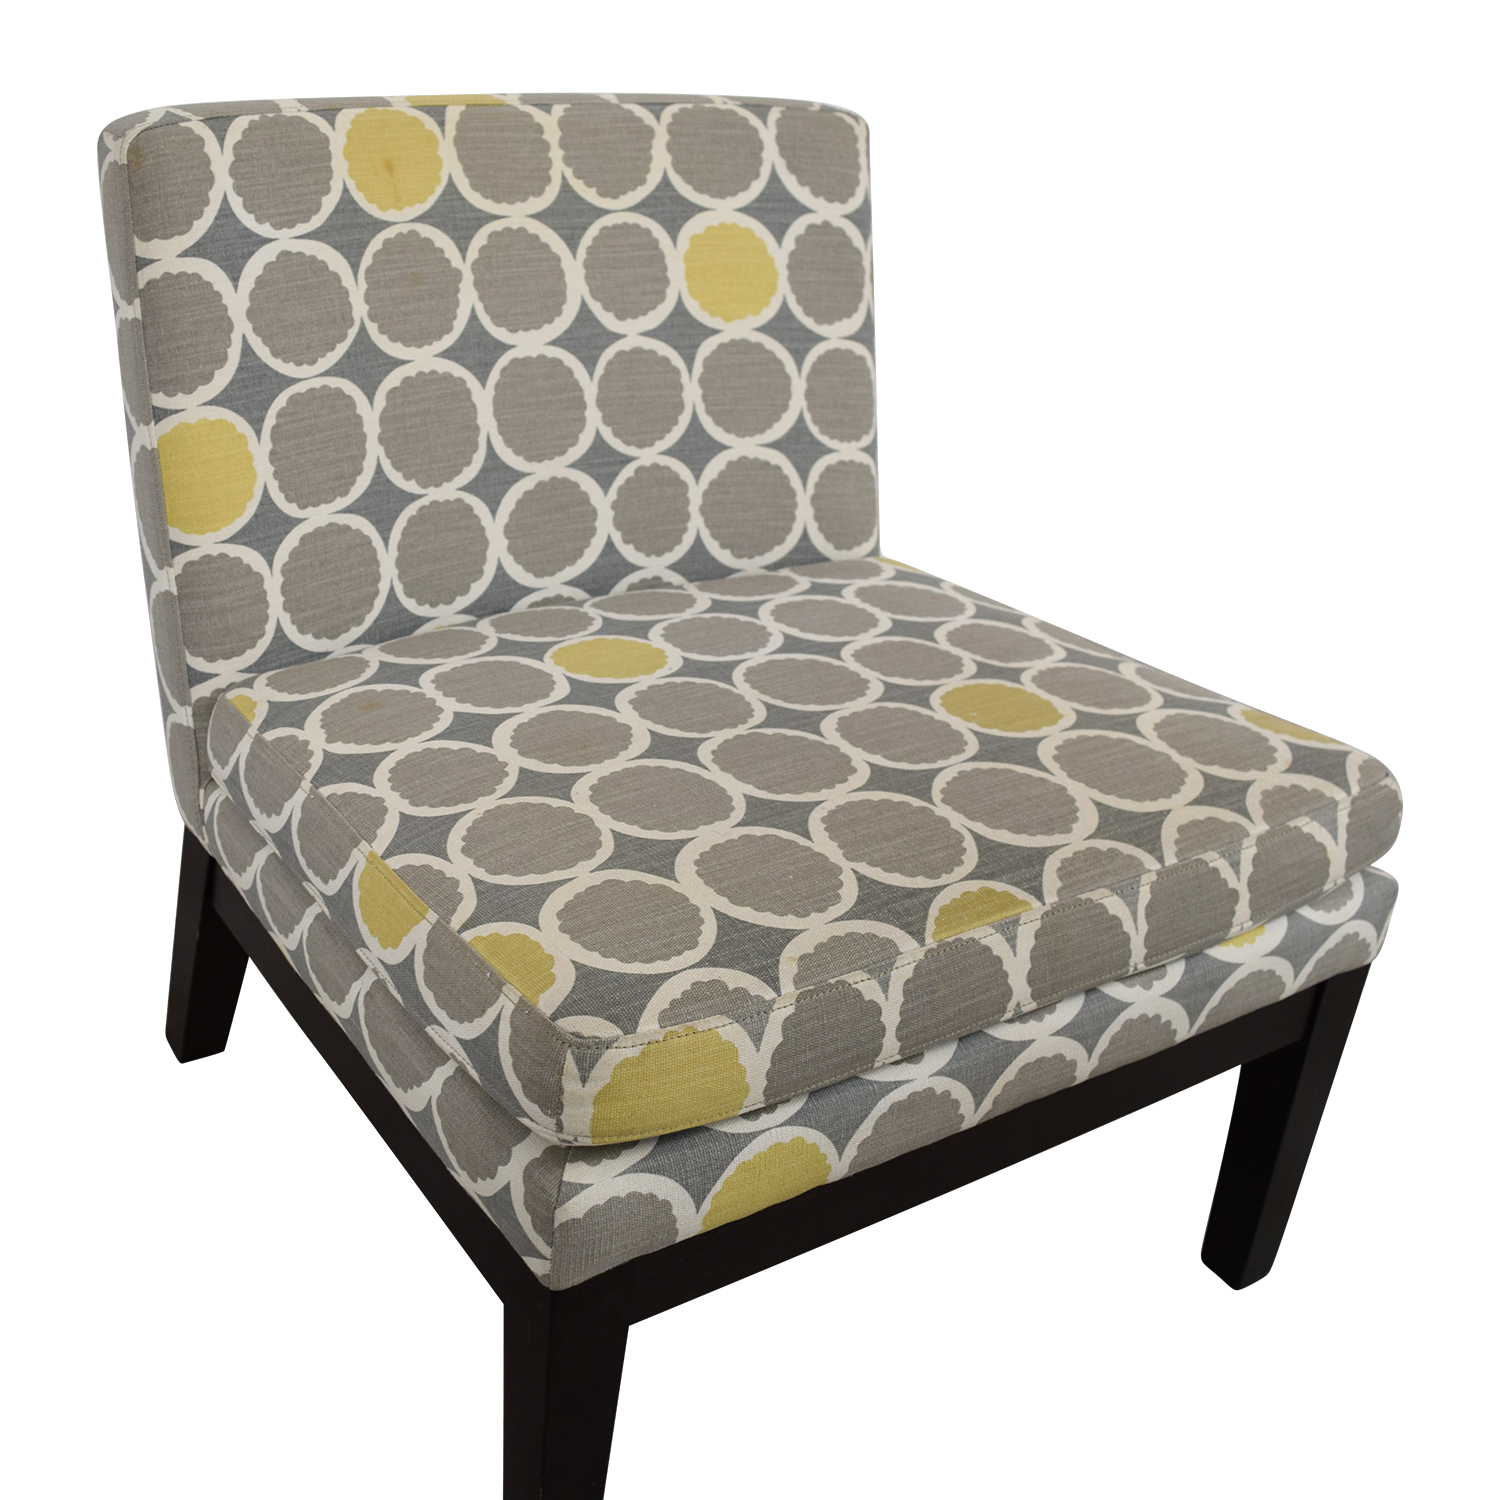 Simple Accent Chairs For Sale Gallery